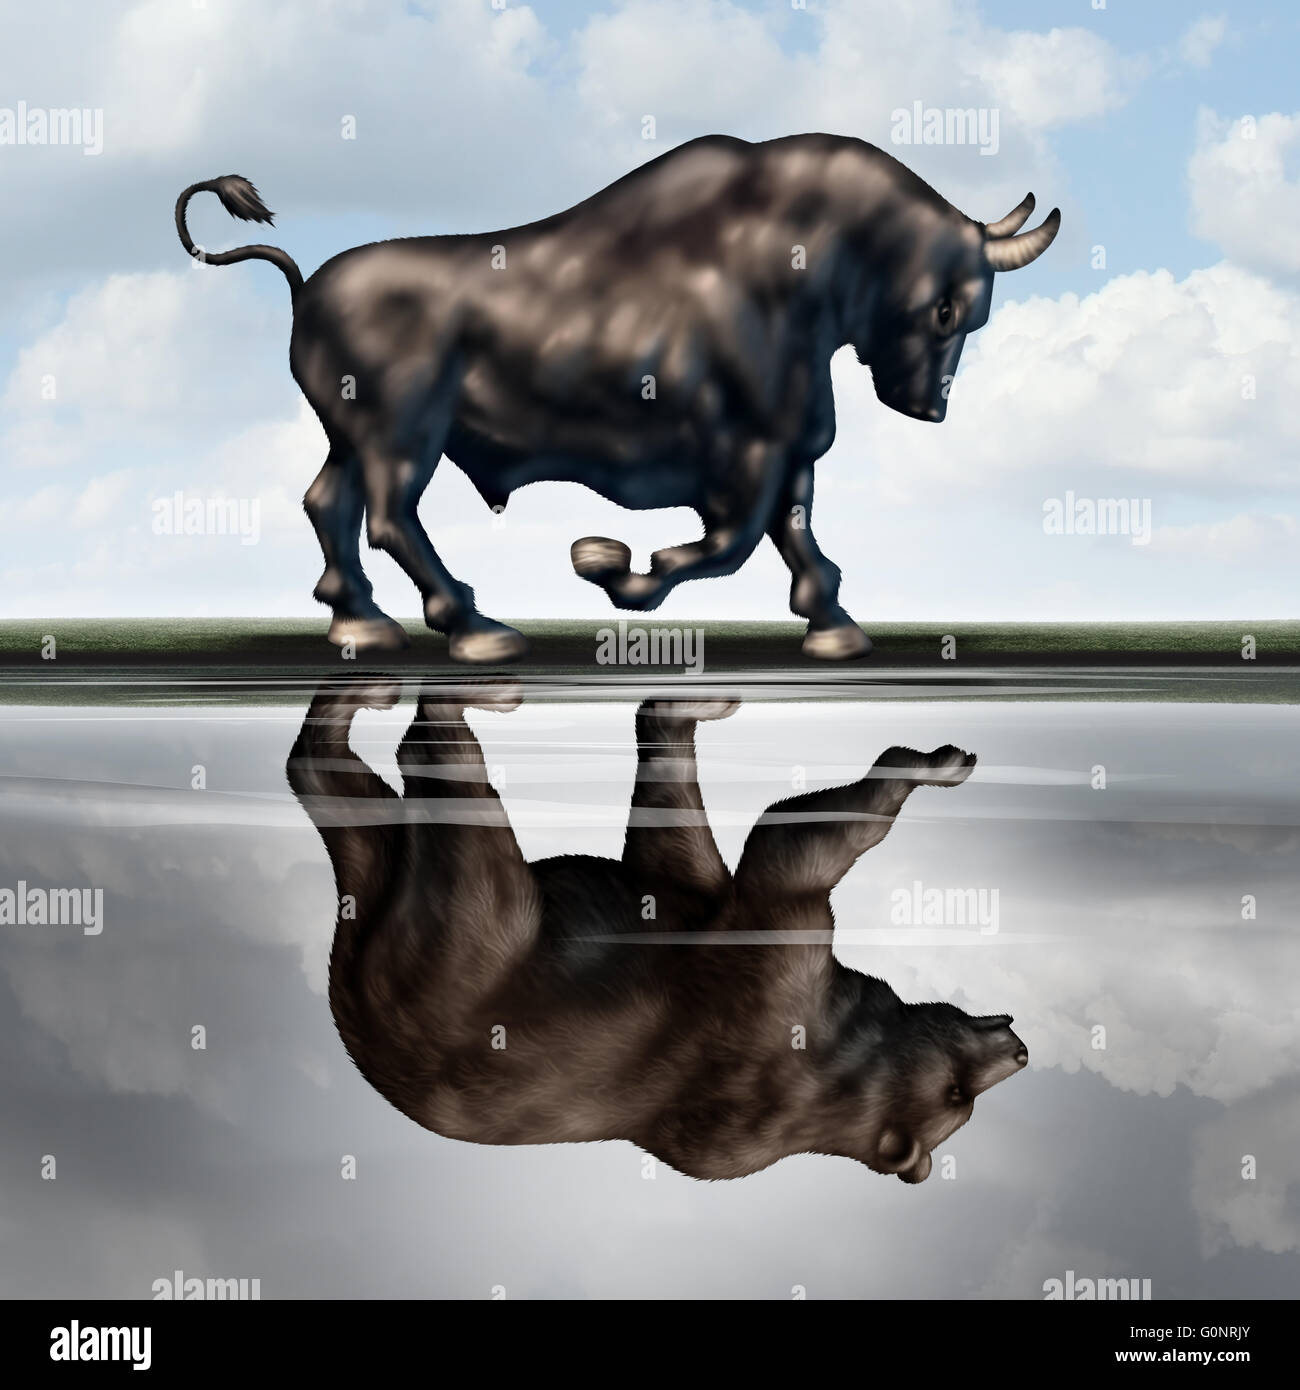 Investing warning signs as a financial stock market metaphor with a bull creating a reflection in the water of a - Stock Image